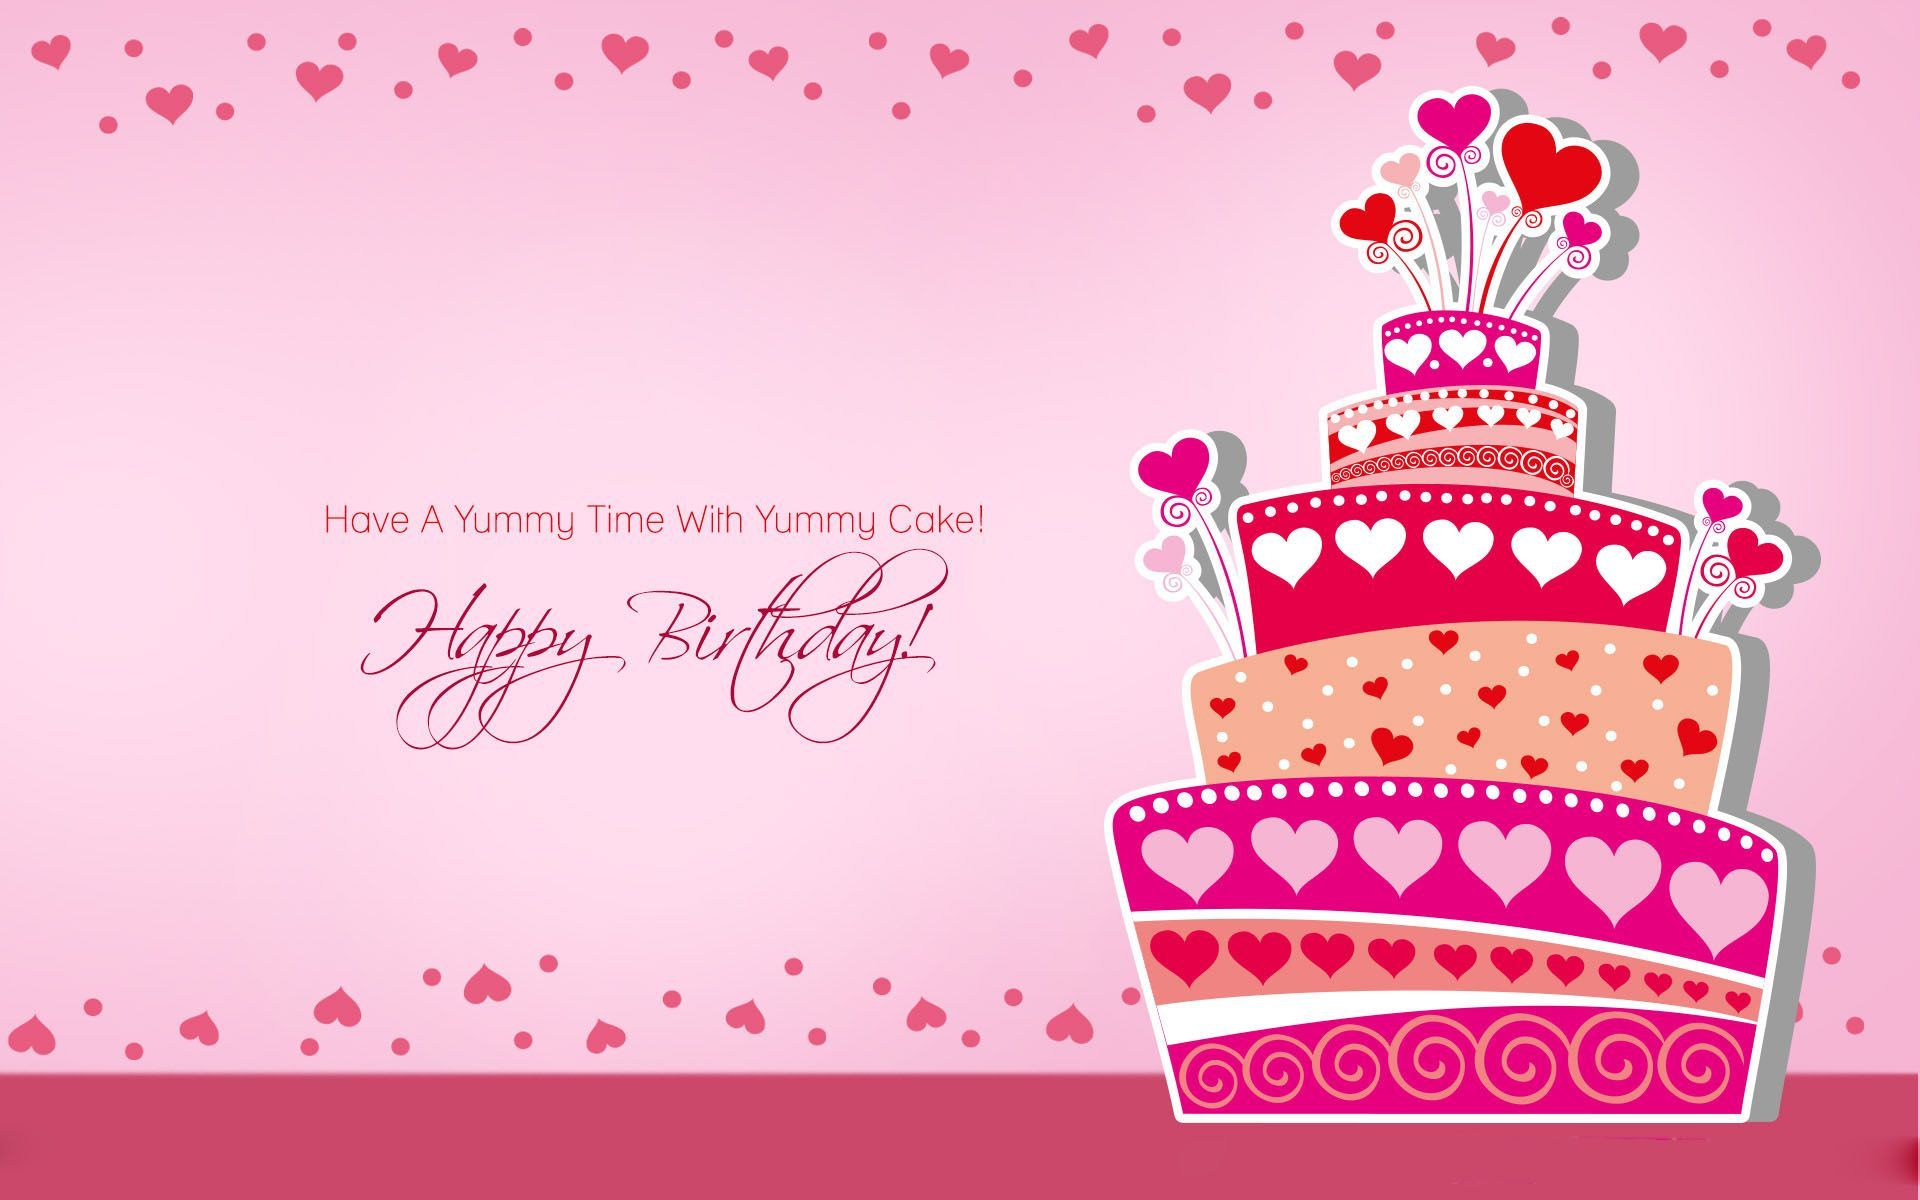 Hd wallpaper birthday - Happy Birthday Images Hd Wallpapers Free Download